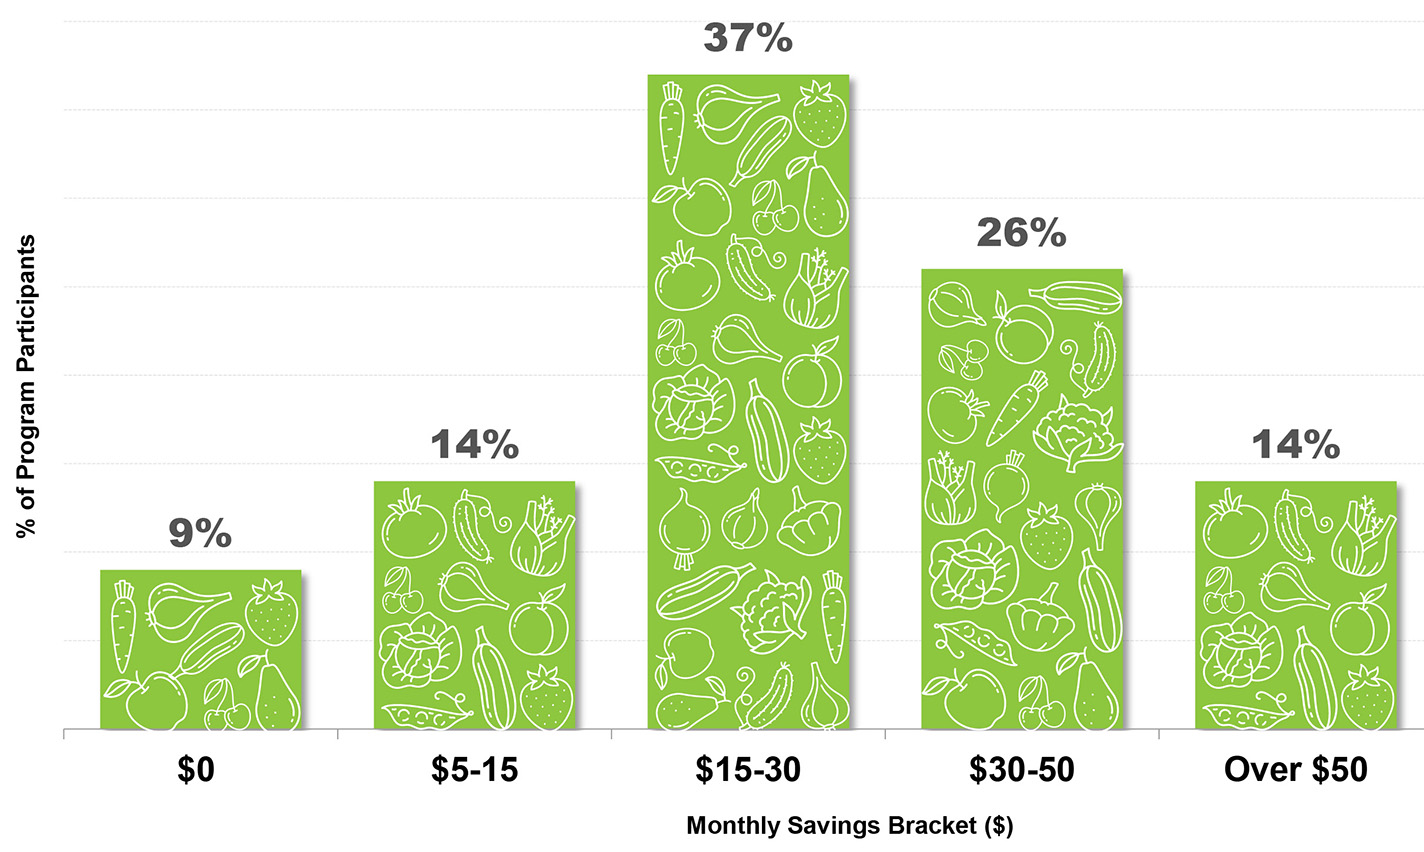 37 percent of program participants saved 15 to 30 dollars per month on fruits and vegetables through involvement in the community garden